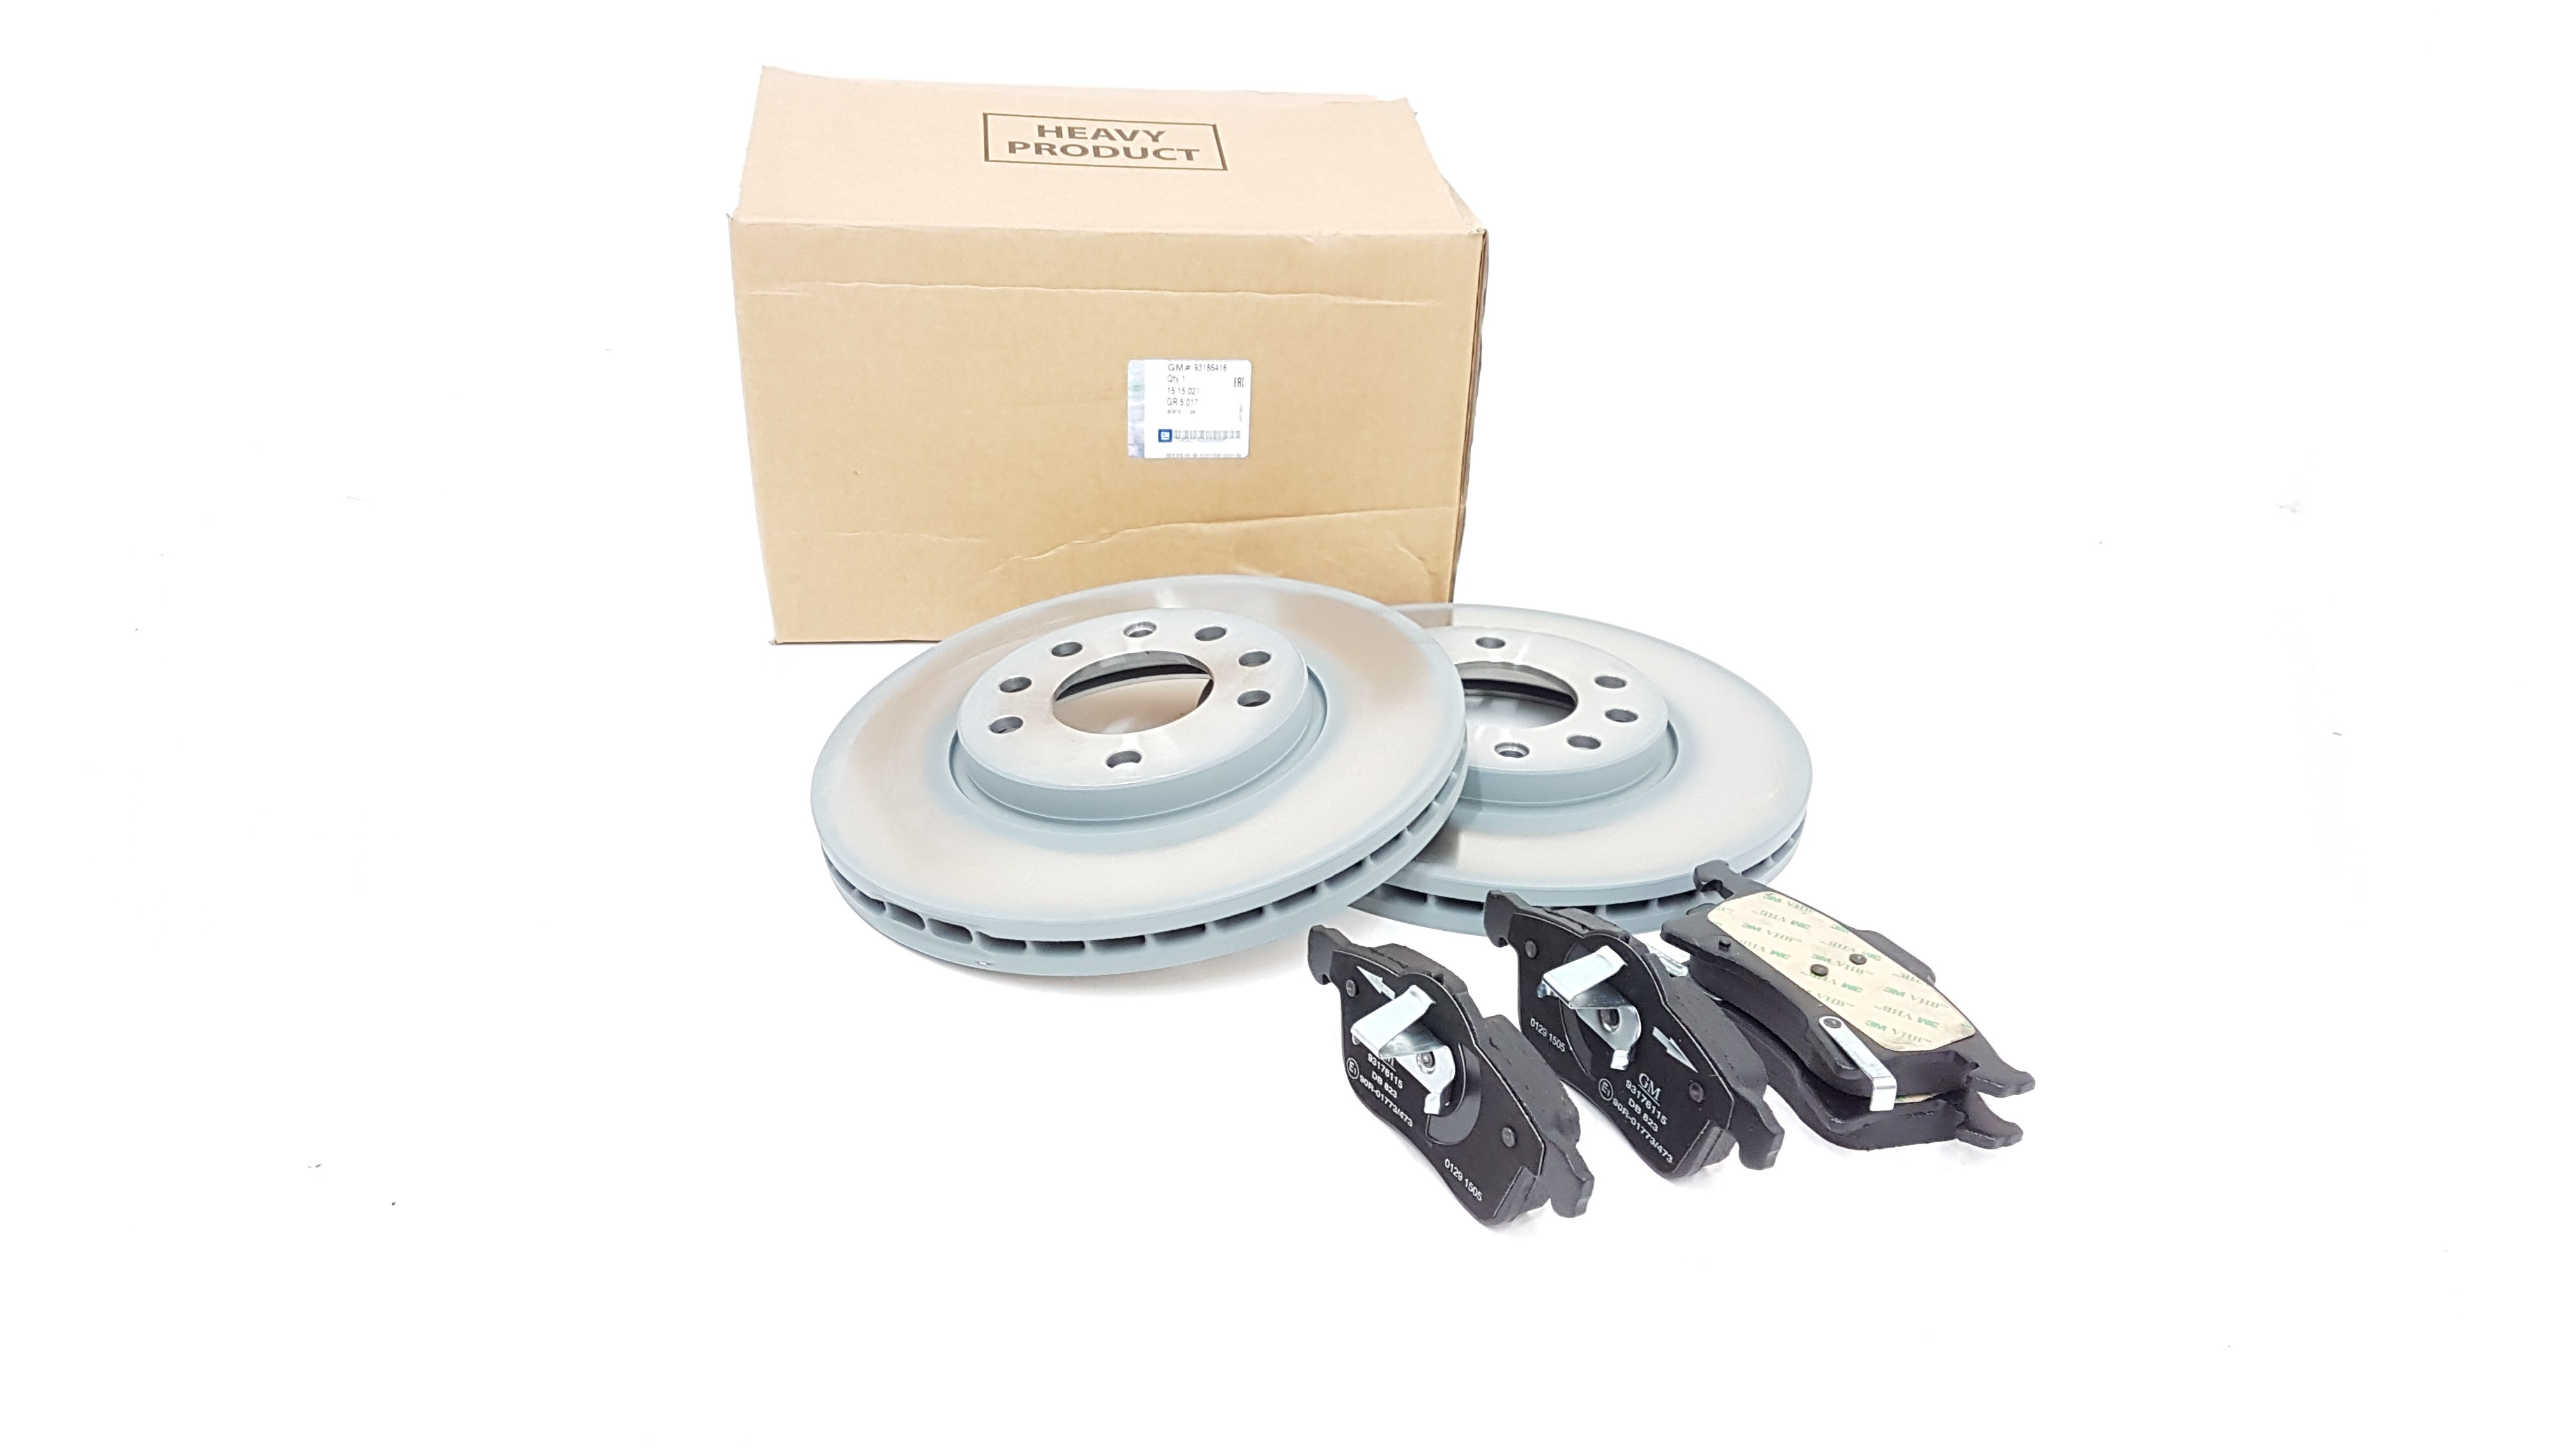 Genuine Delphi Coated Vauxhall Astra Meriva Zafira Front Discs and Pads Kit